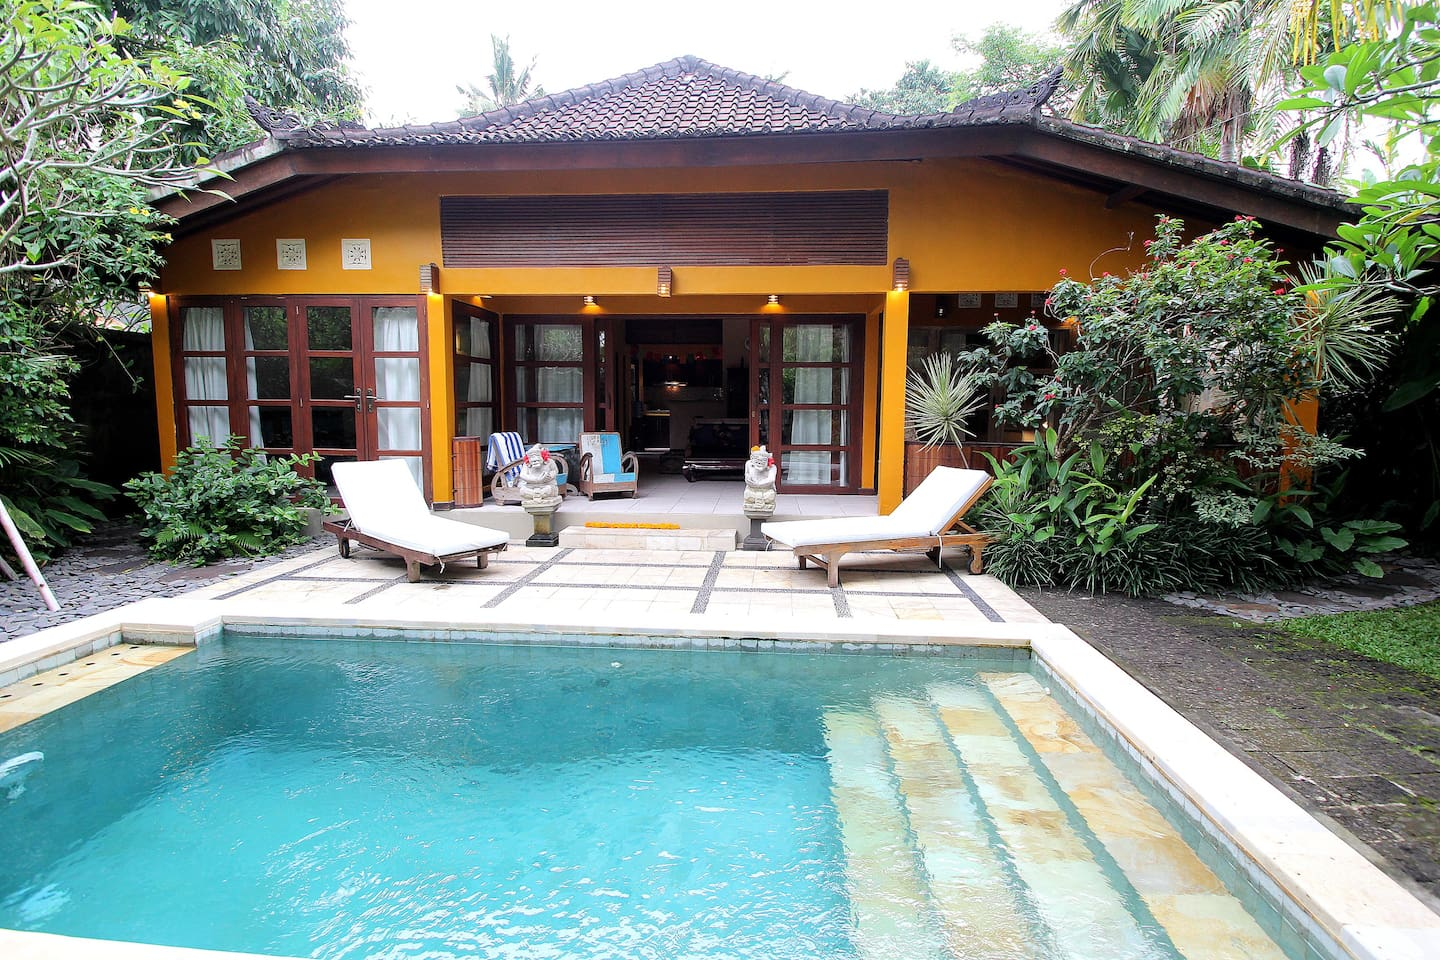 2 bedroom, 2 bathroom villa in Ubud's best neighbourhood!